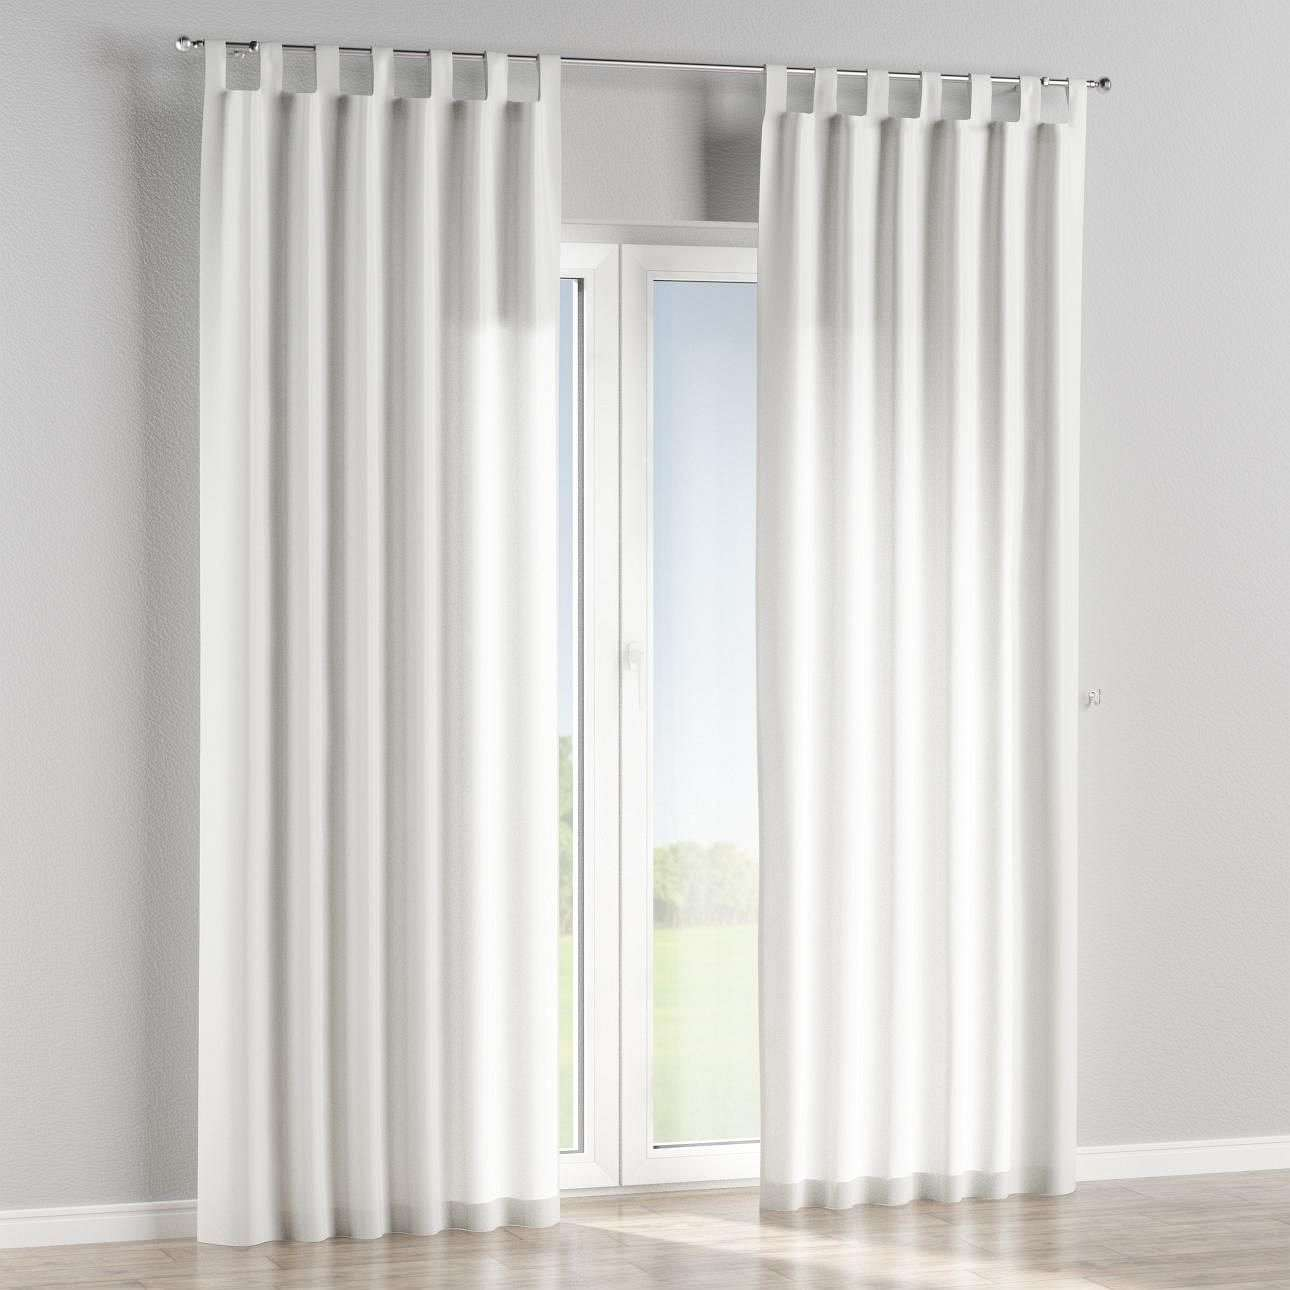 Tab top lined curtains in collection Norge, fabric: 140-96